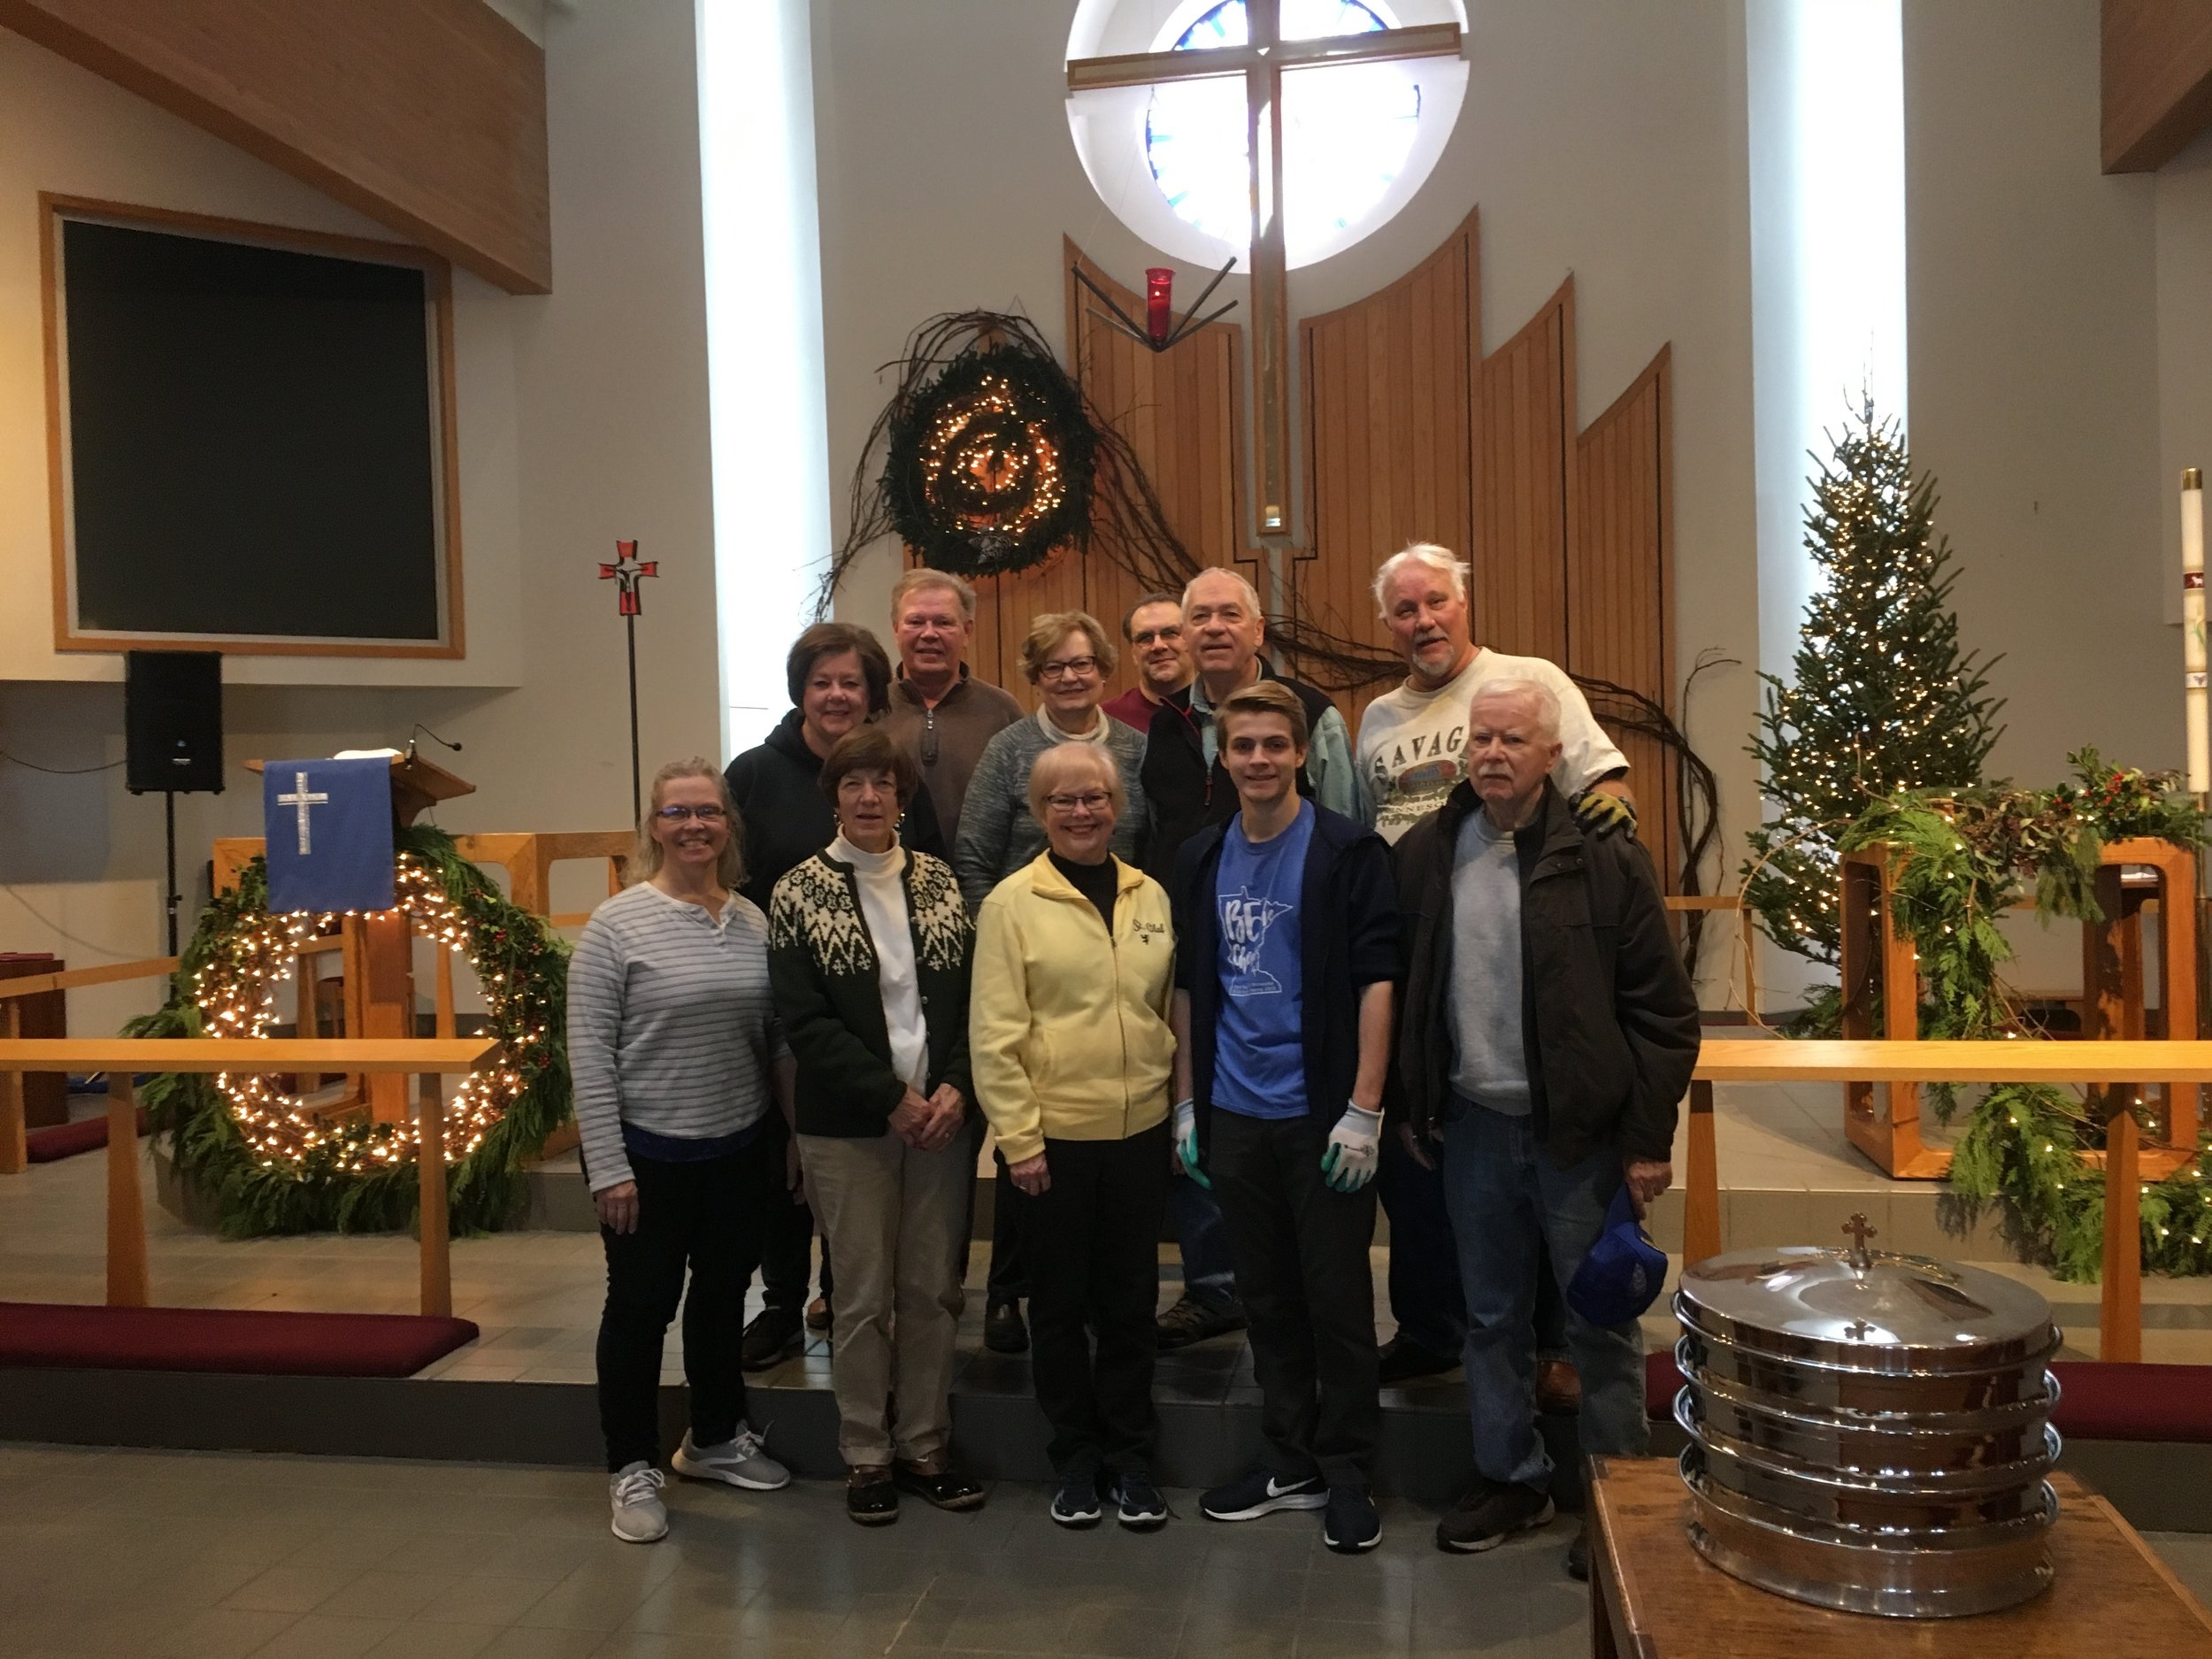 A dedicated group of folks decorates the Sanctuary for Advent and Christmas celebrations.  Led by Kelvin Miller, Minister of Music, this crew brings joy to their task.